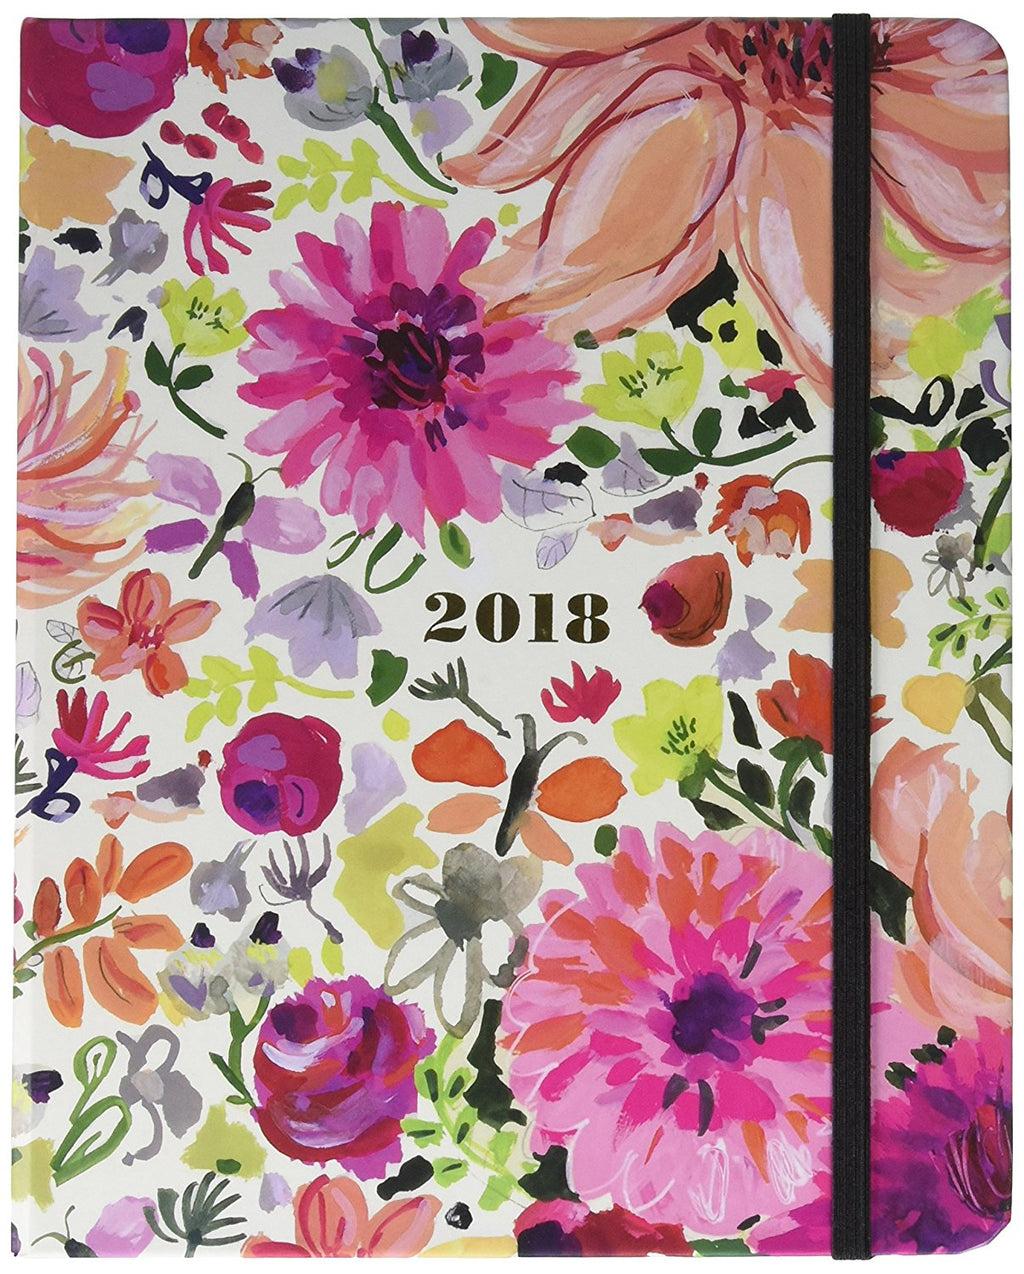 Kate Spade New York 17-Month Large Agenda Academic Calender - Dahlia